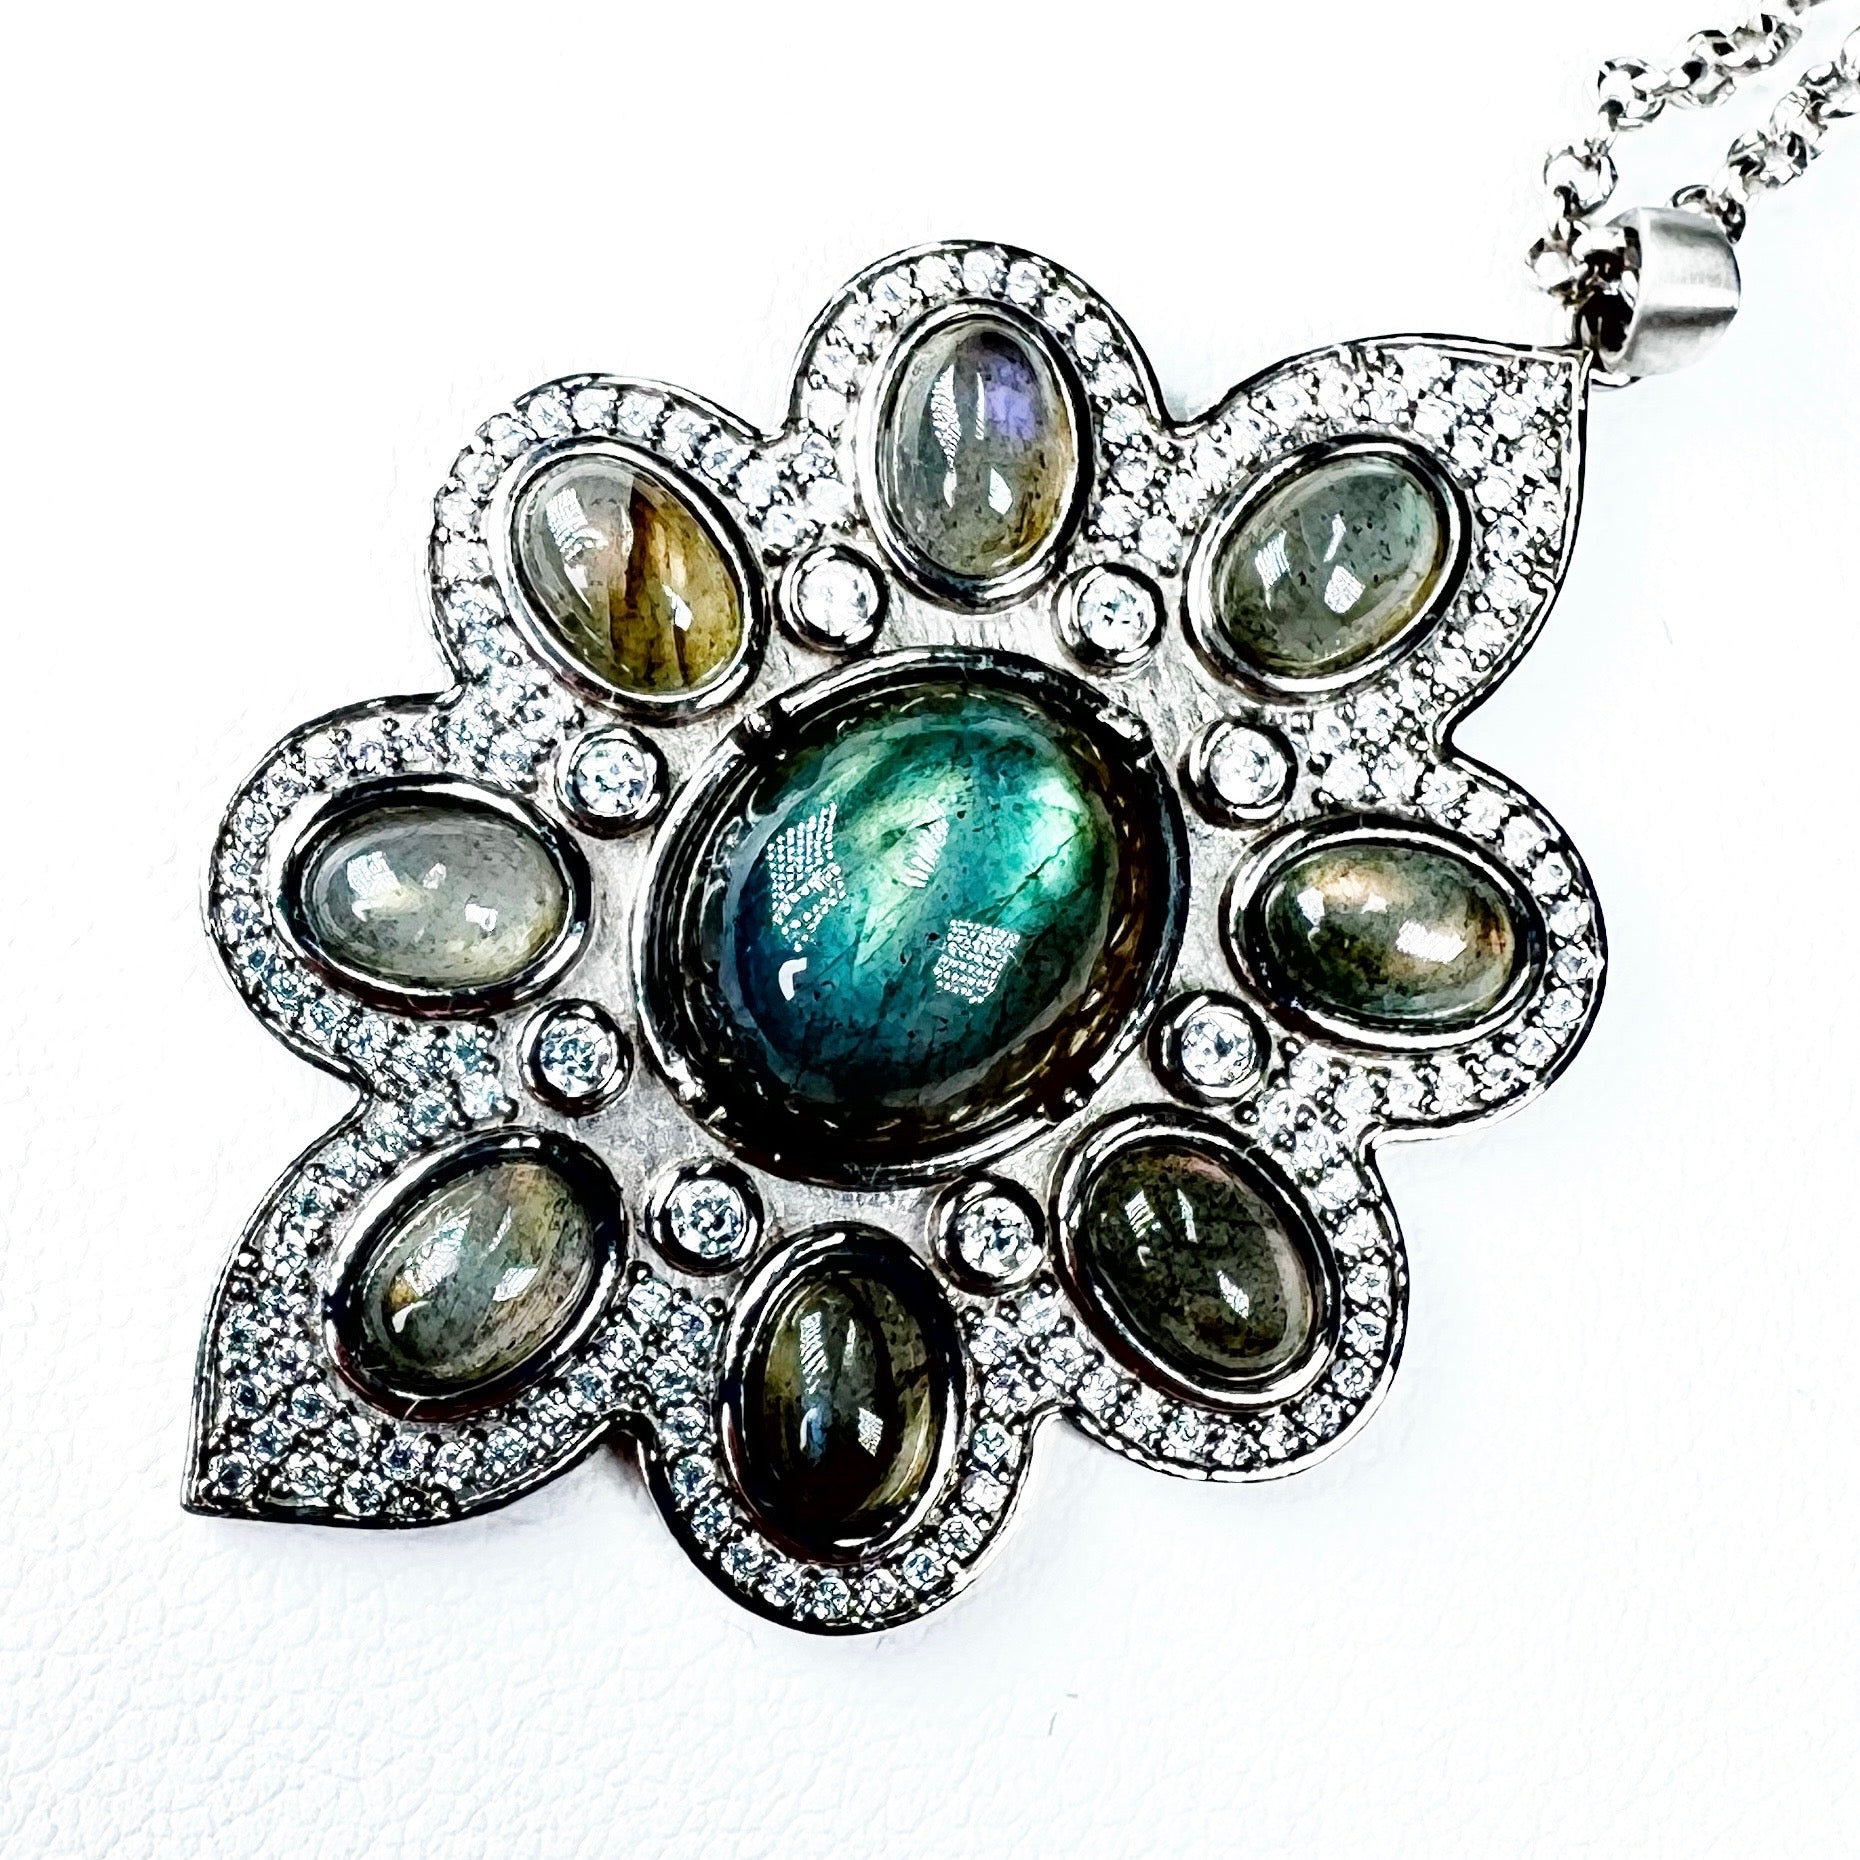 PINK TOPAZ LILAH RING - THE LAST!